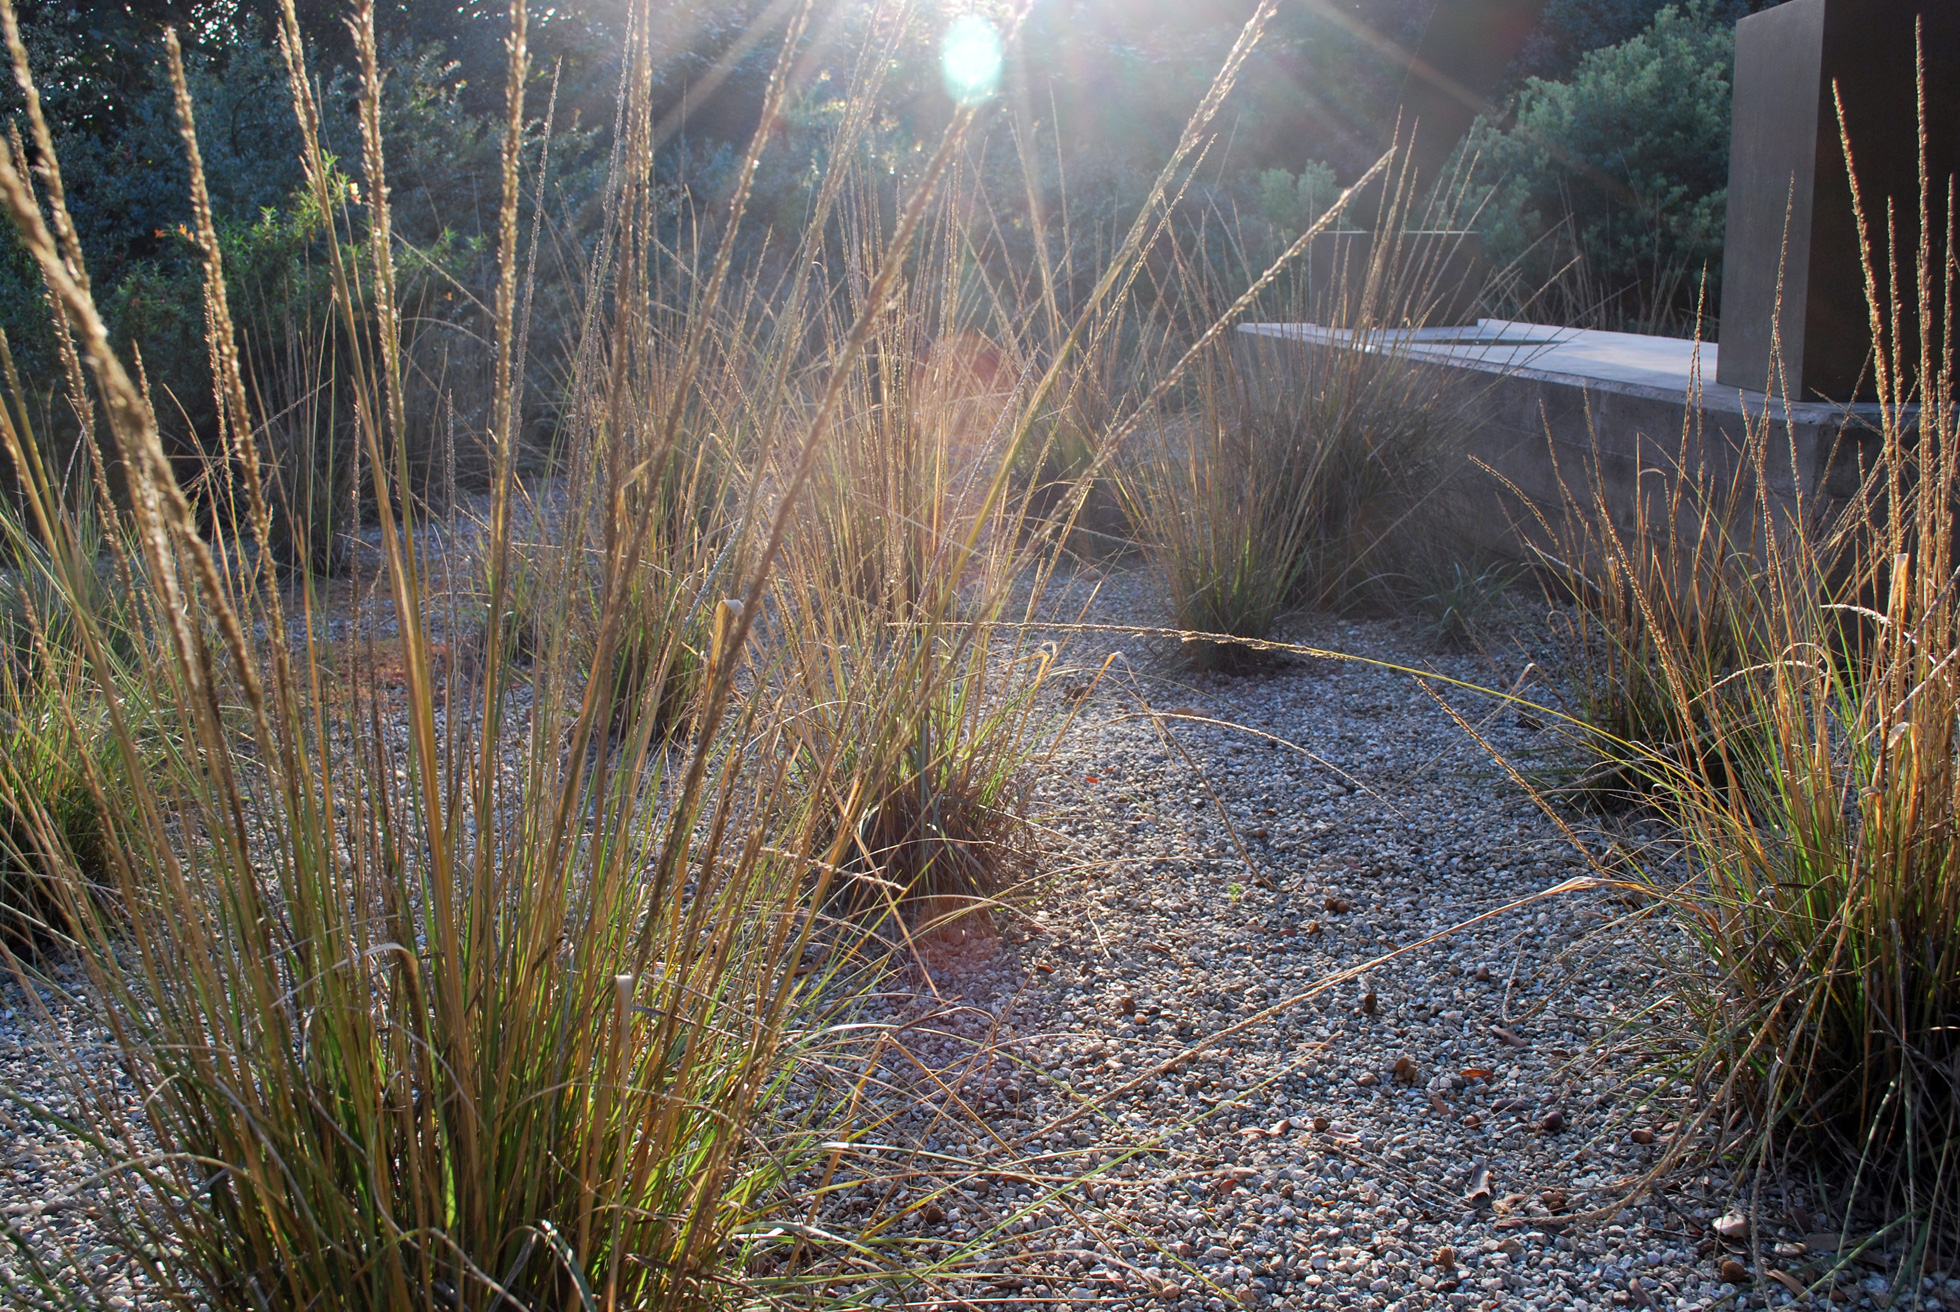 Deer grass in the early morning light